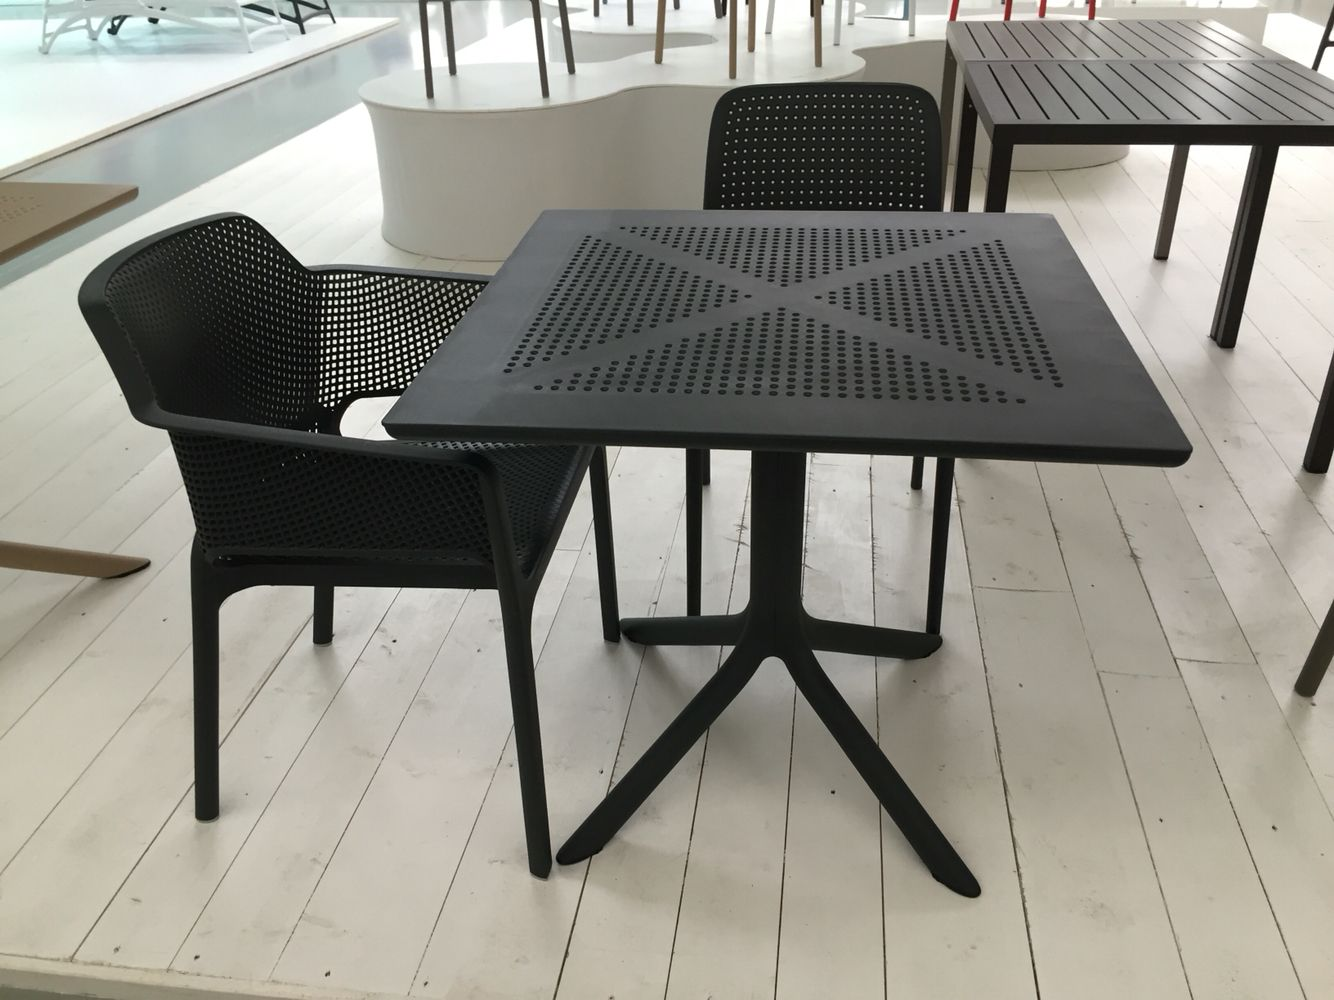 Nardi sedie ~ New nardi clip table with net chairs balcony furniture